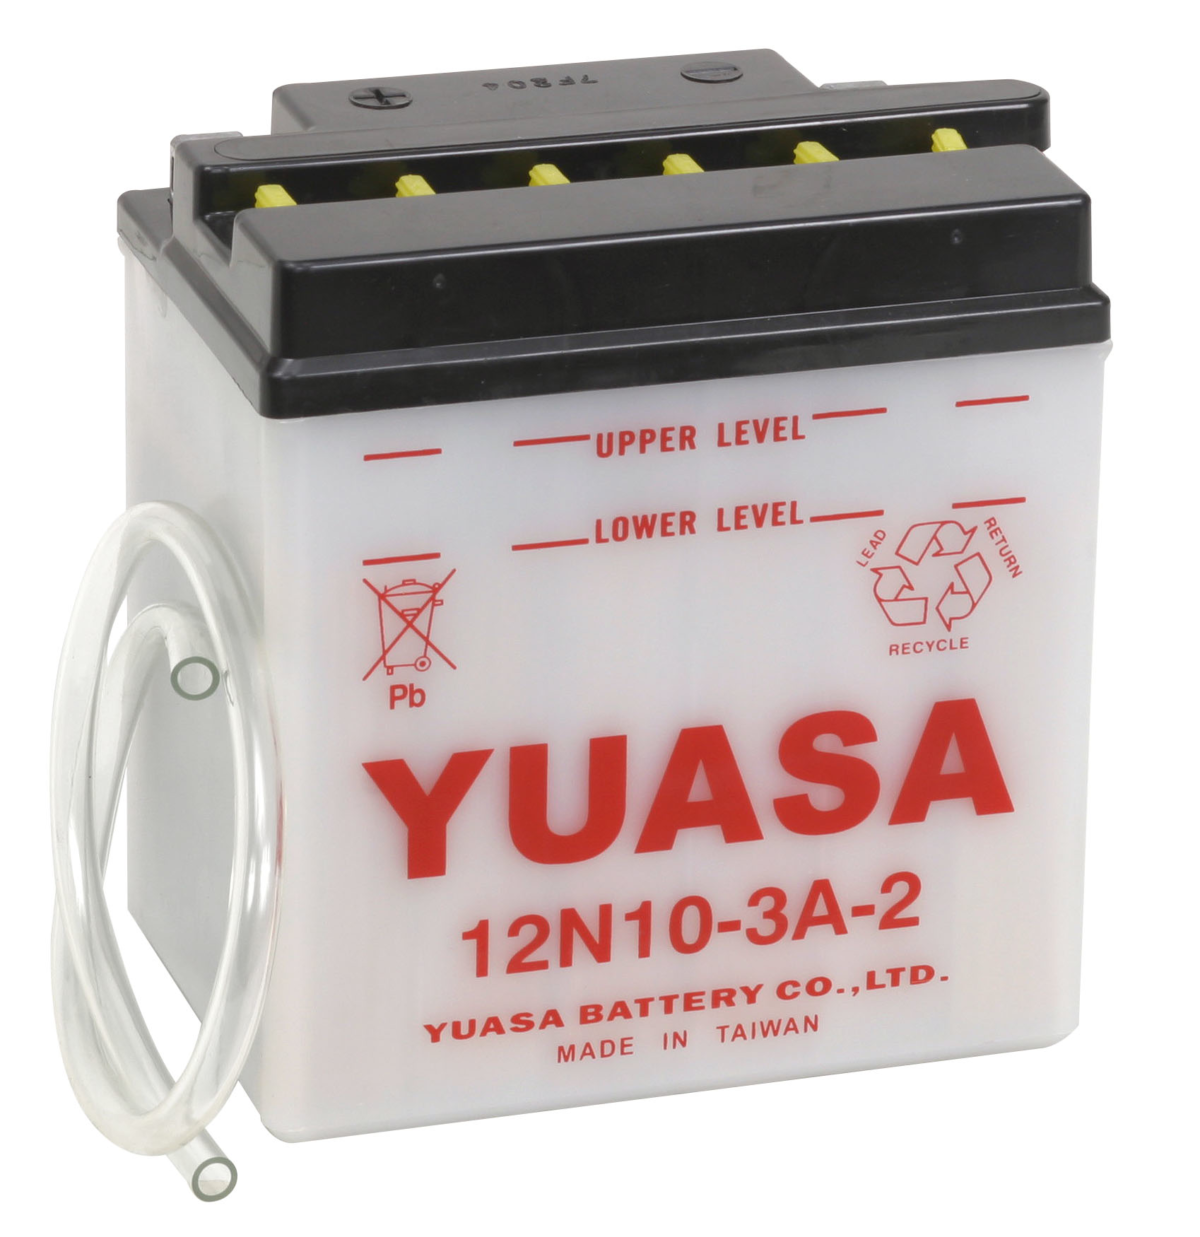 12N10-3A-2 Battery